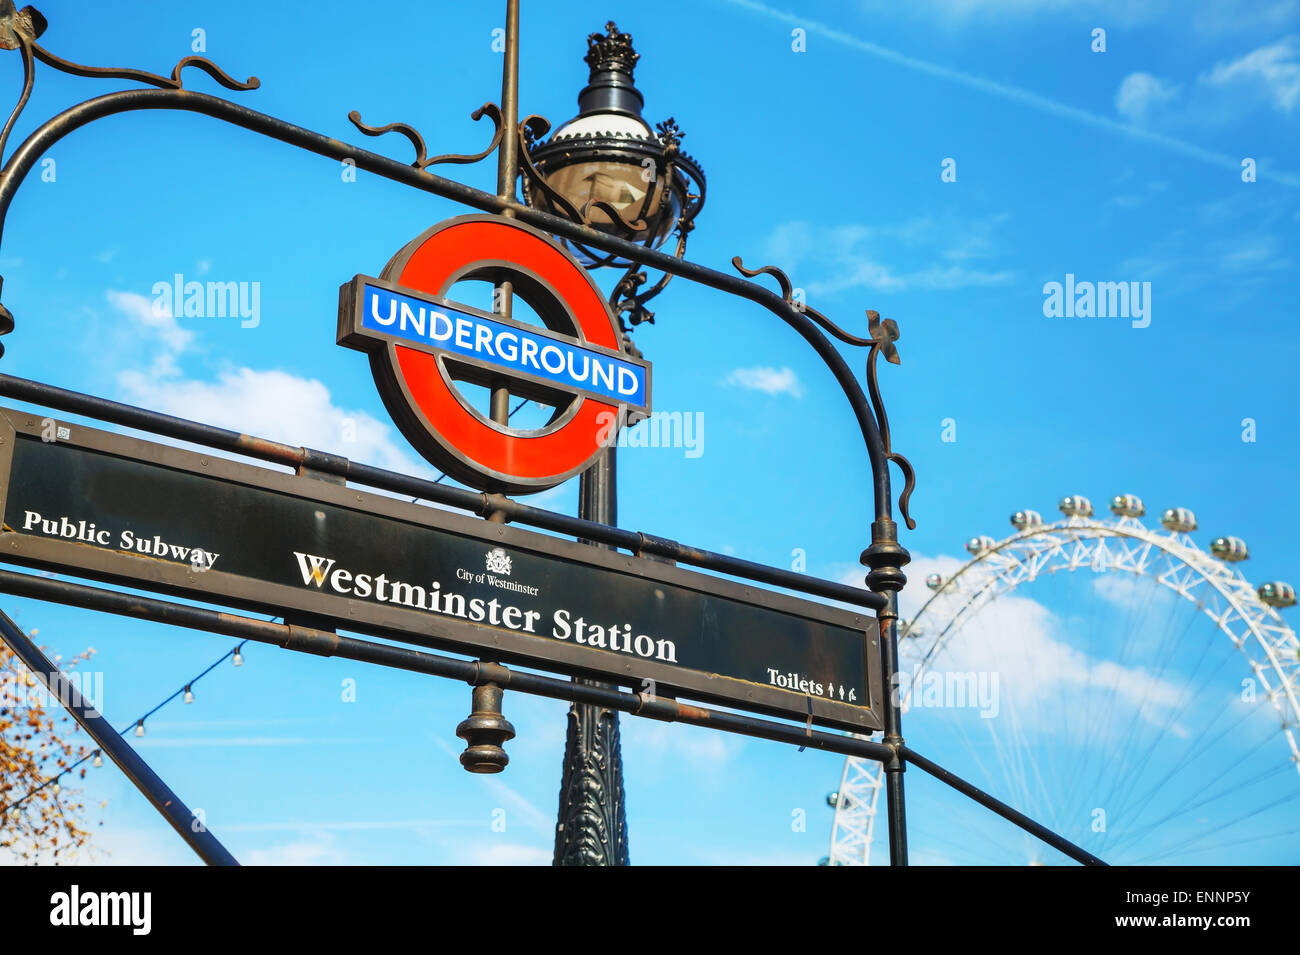 LONDON - APRIL 12: London underground sign at the Westminster station on April 12, 2015 in London, UK. - Stock Image